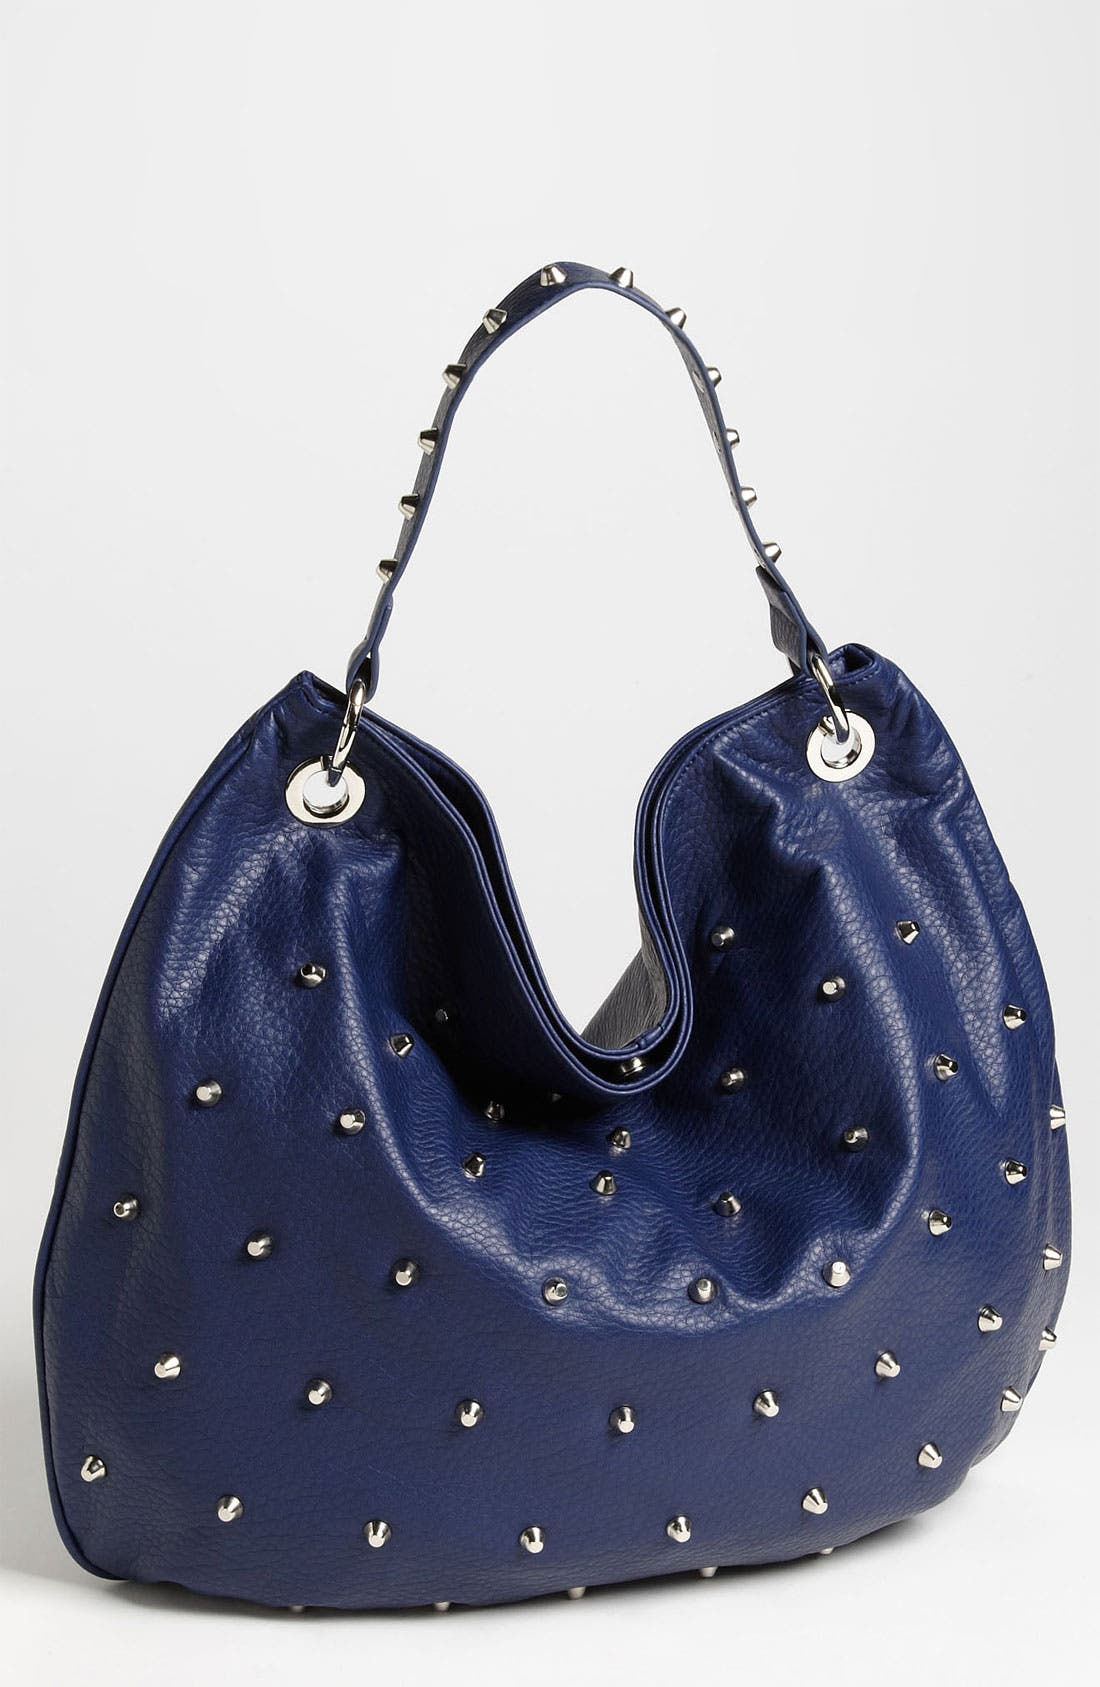 Alternate Image 1 Selected - Steve Madden 'Stud Love' Hobo